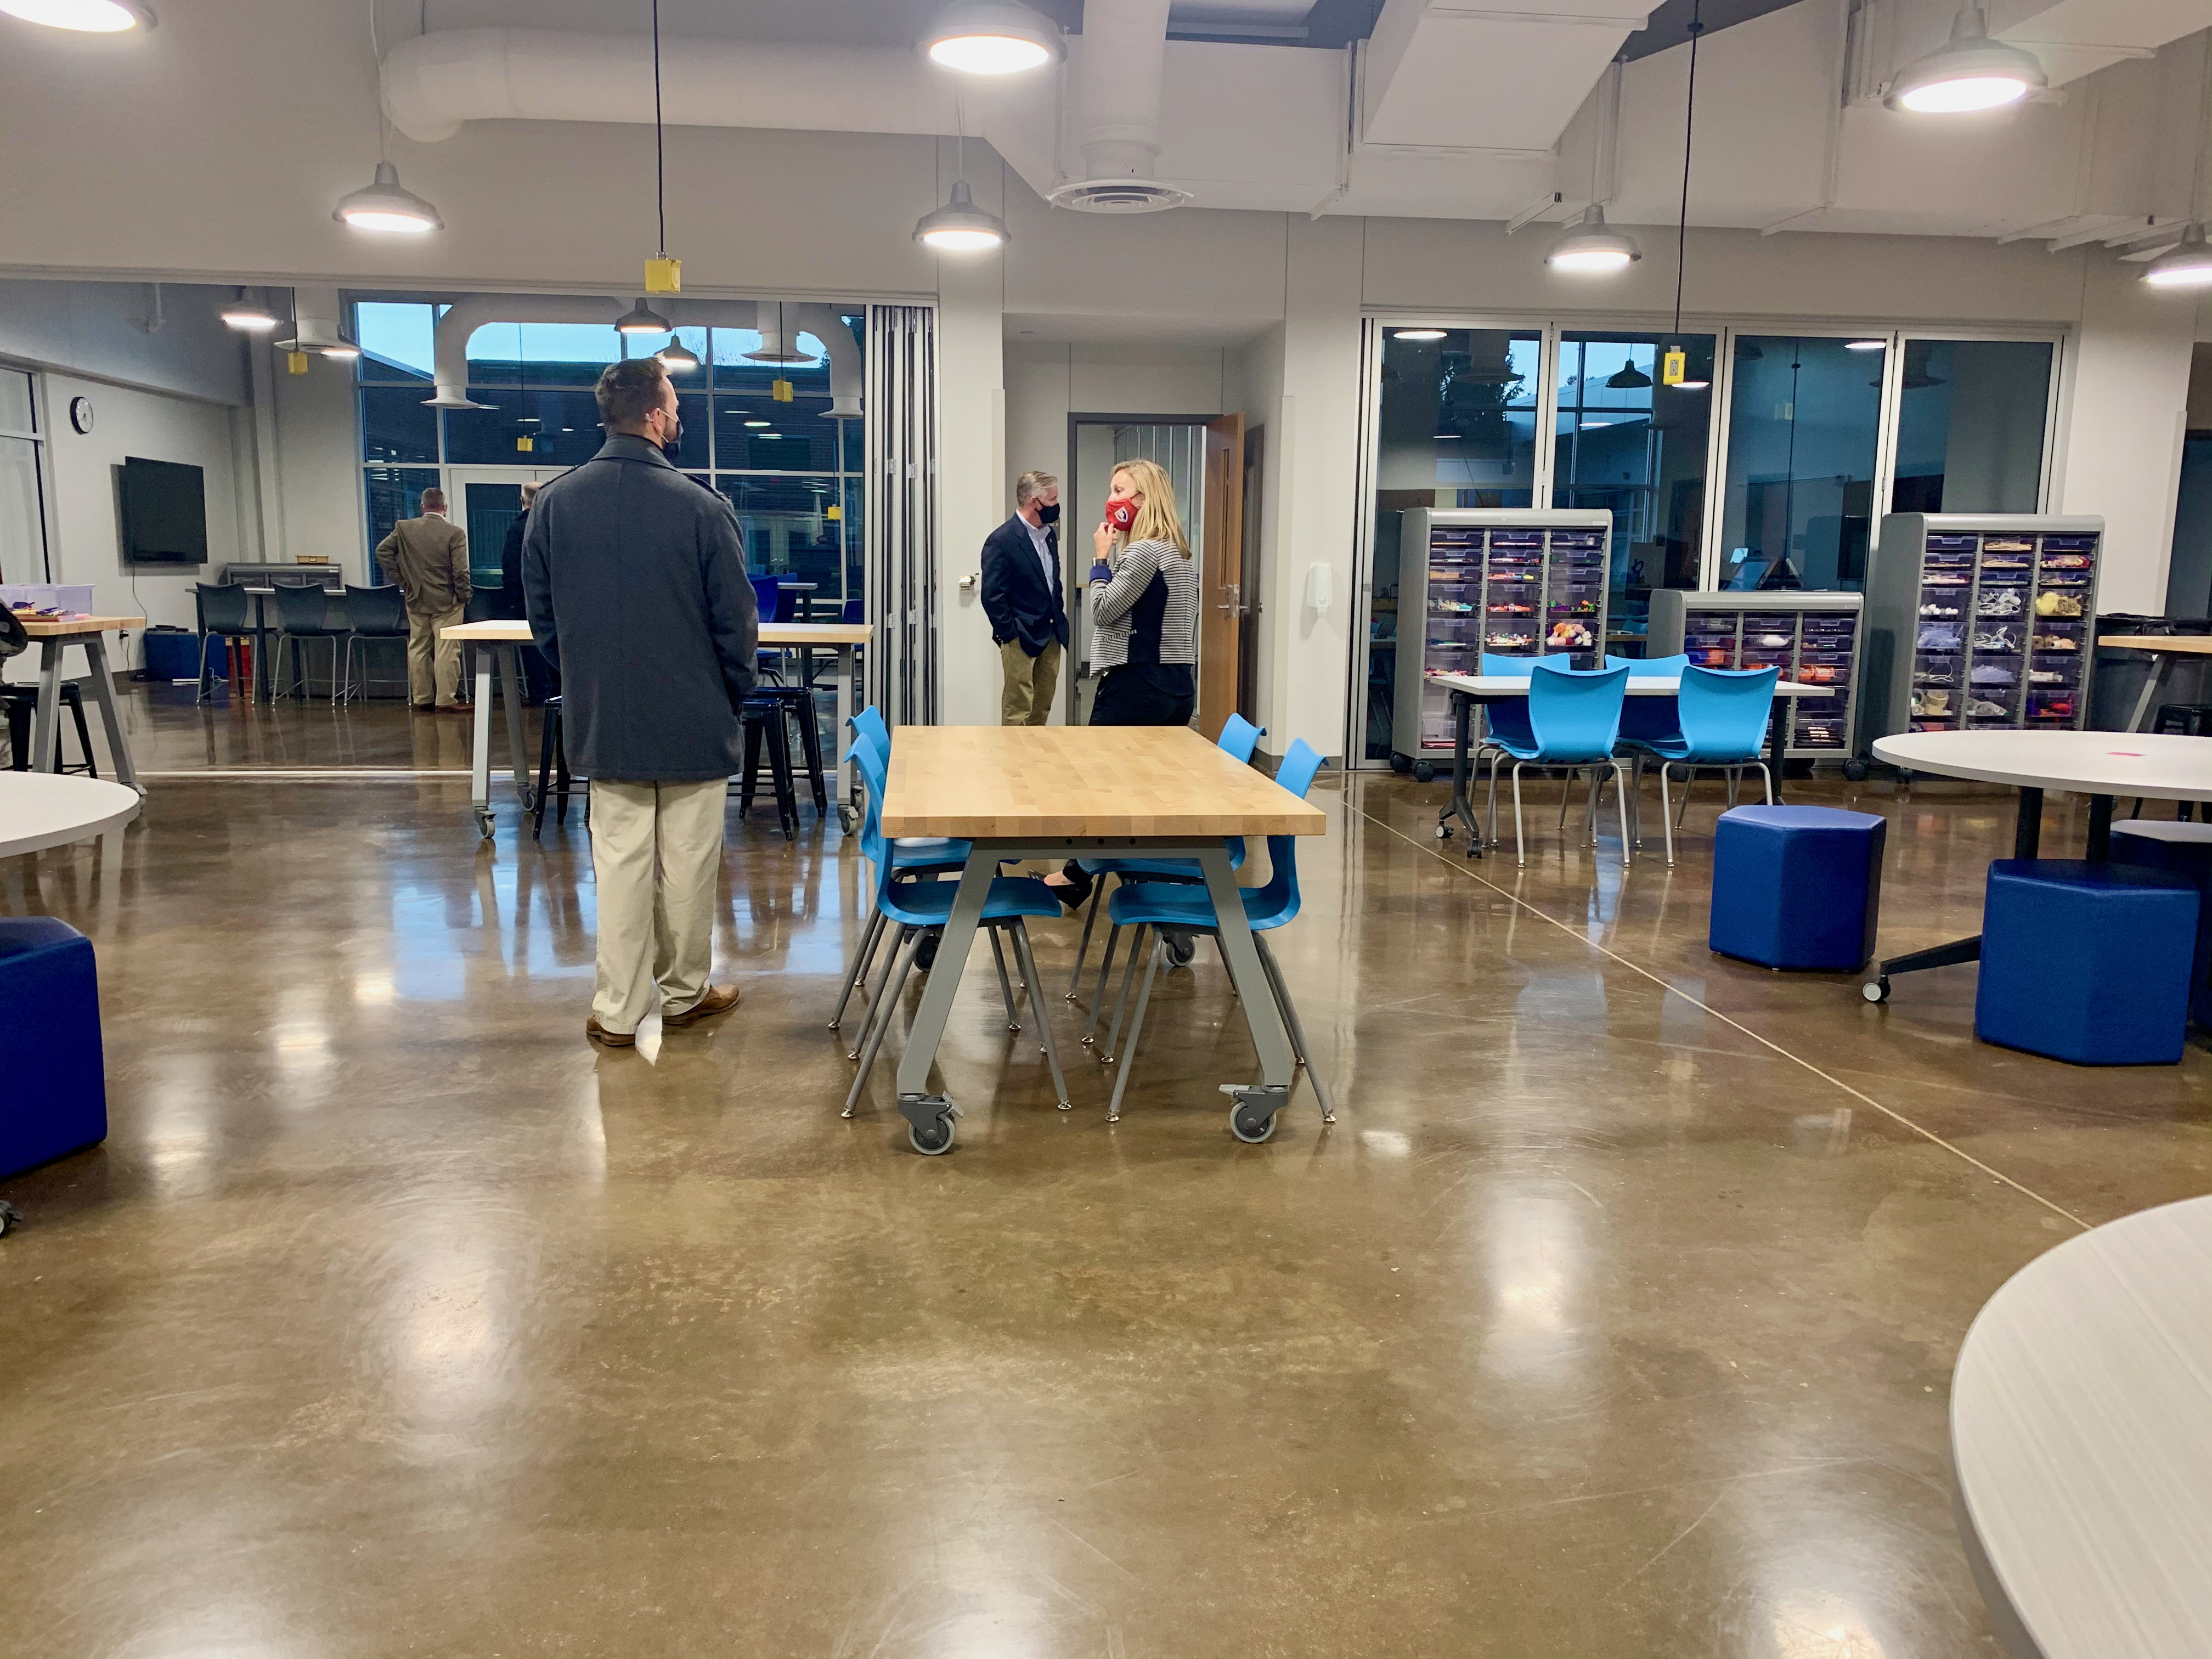 The PCMS Idea Lab is a favorite place for teachers and students to visit for STEM- and other collaborative projects. Plenty of wide-open space, supplies of all sorts, and sinks to clean up messes made during exploration.